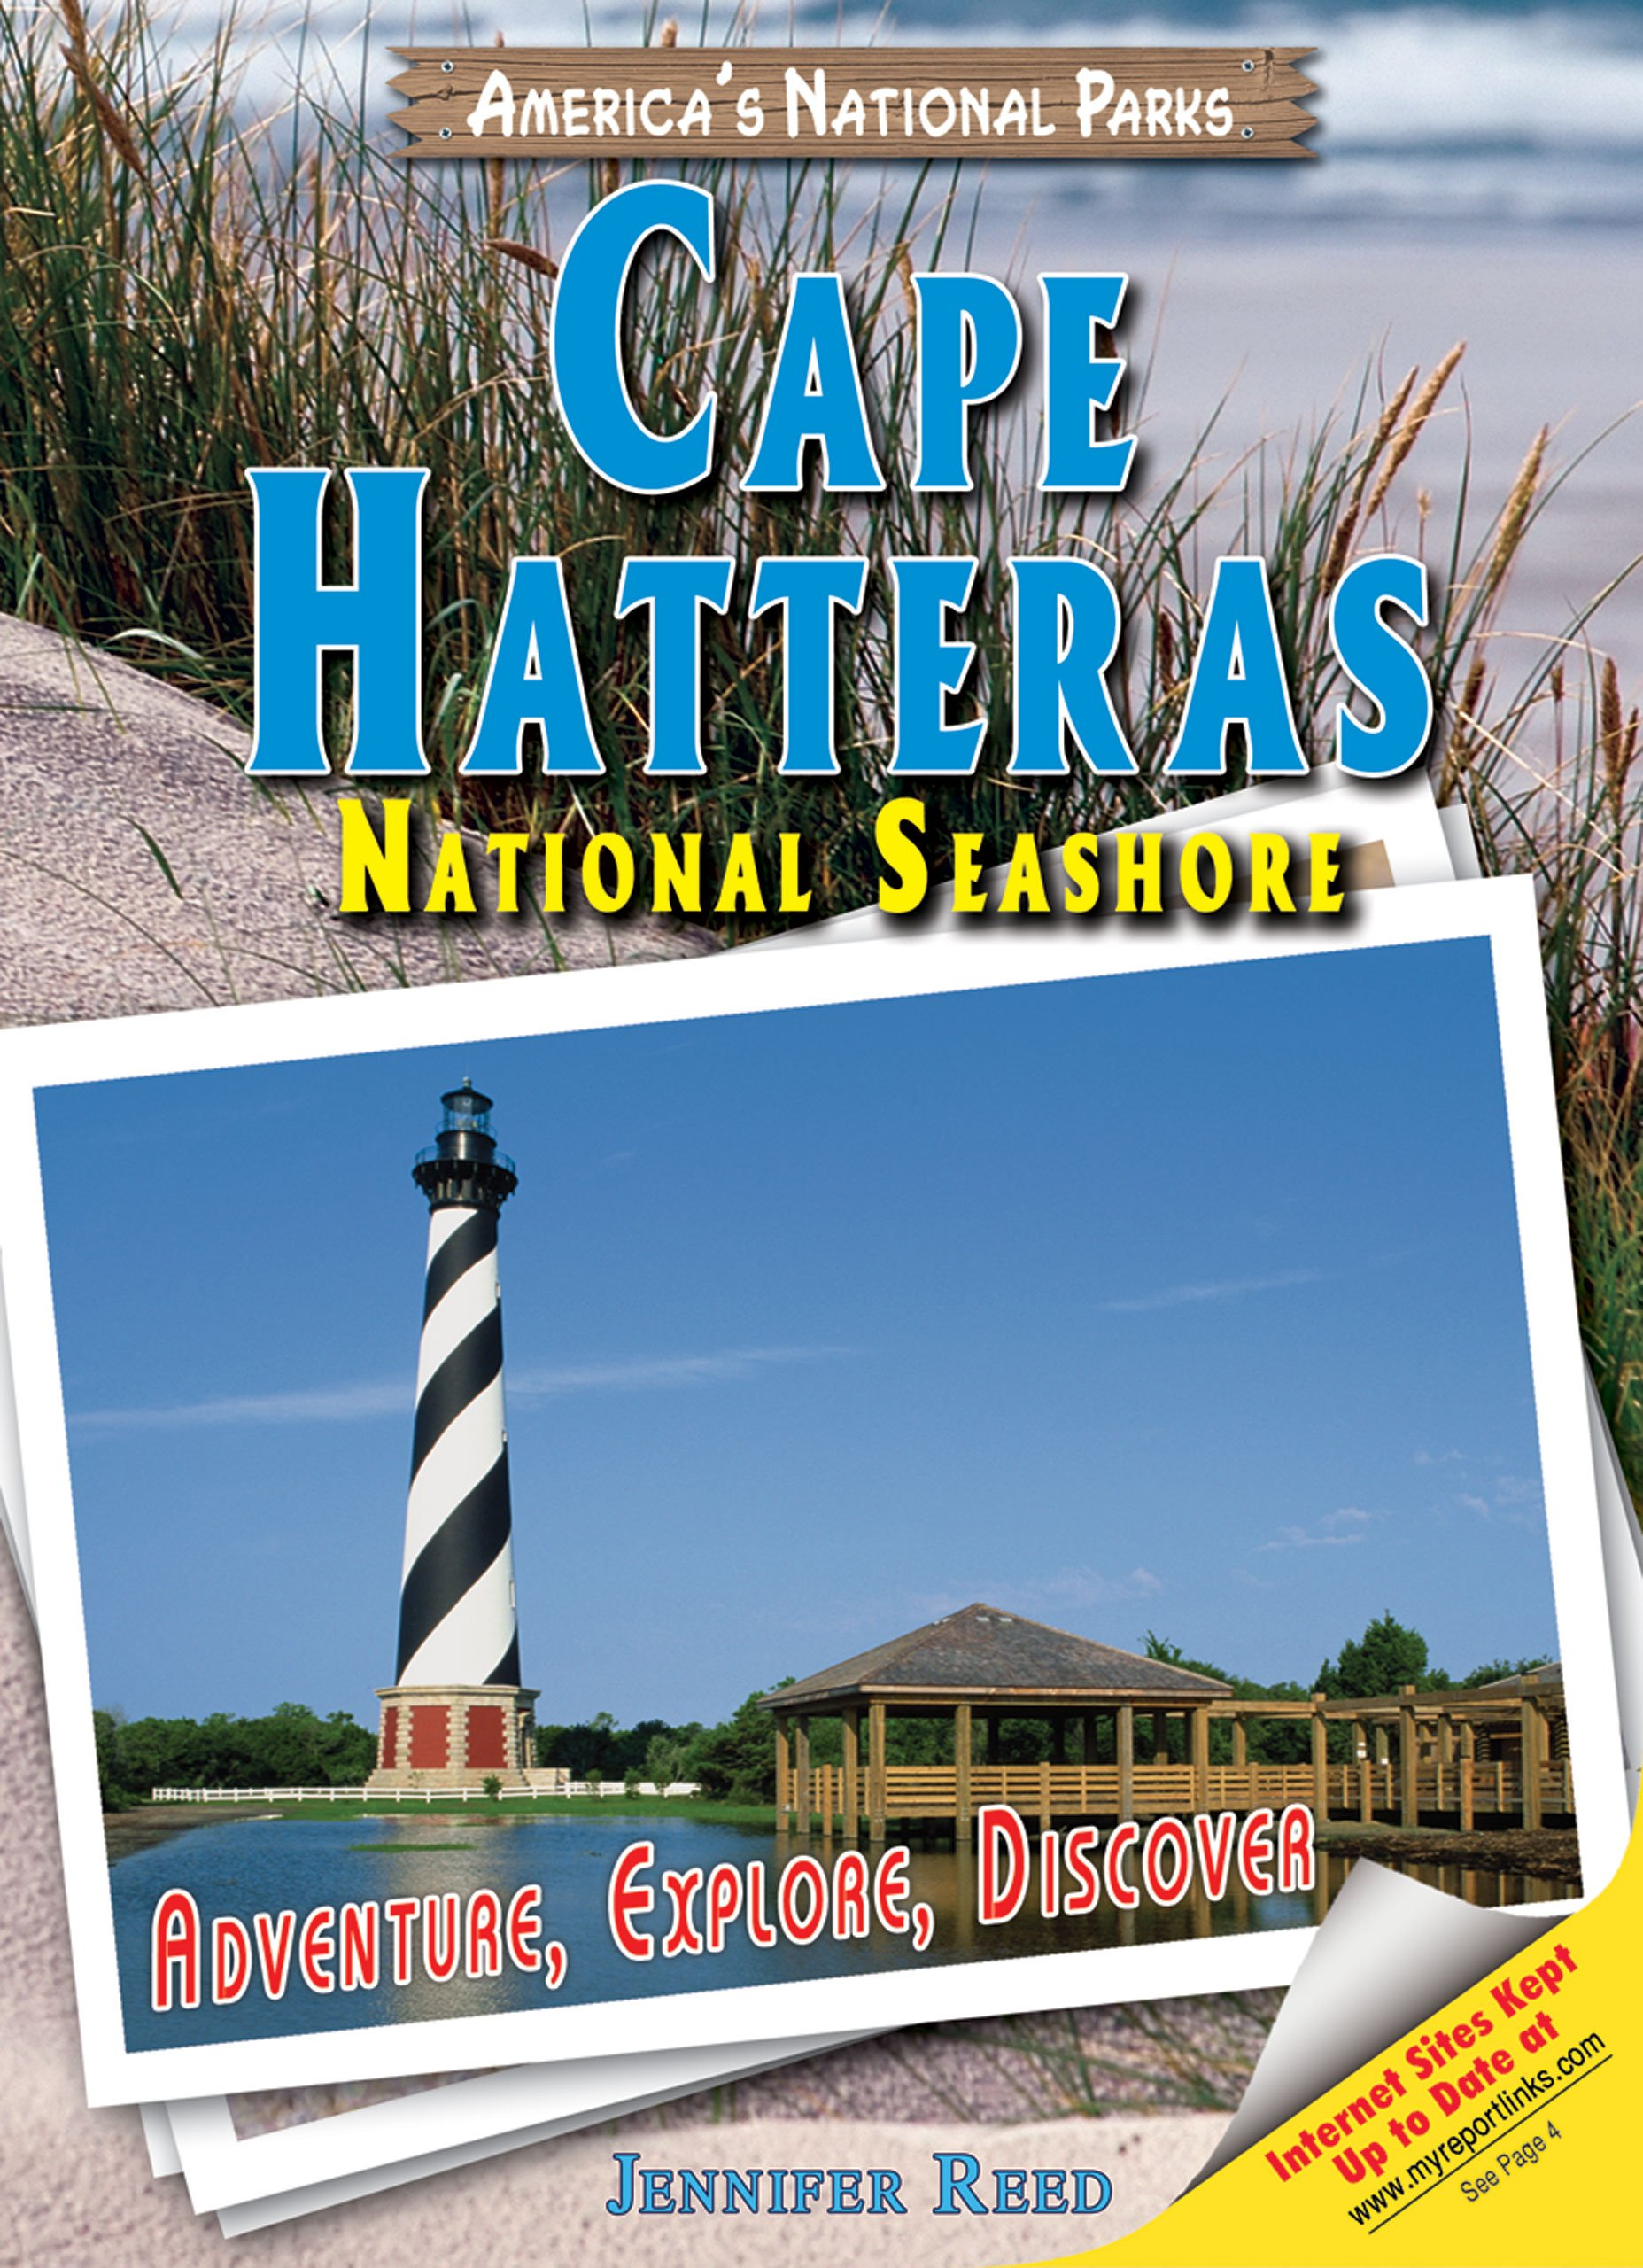 Cape Hatteras National Seashore: Adventure, Explore, Discover (America's National Parks) pdf